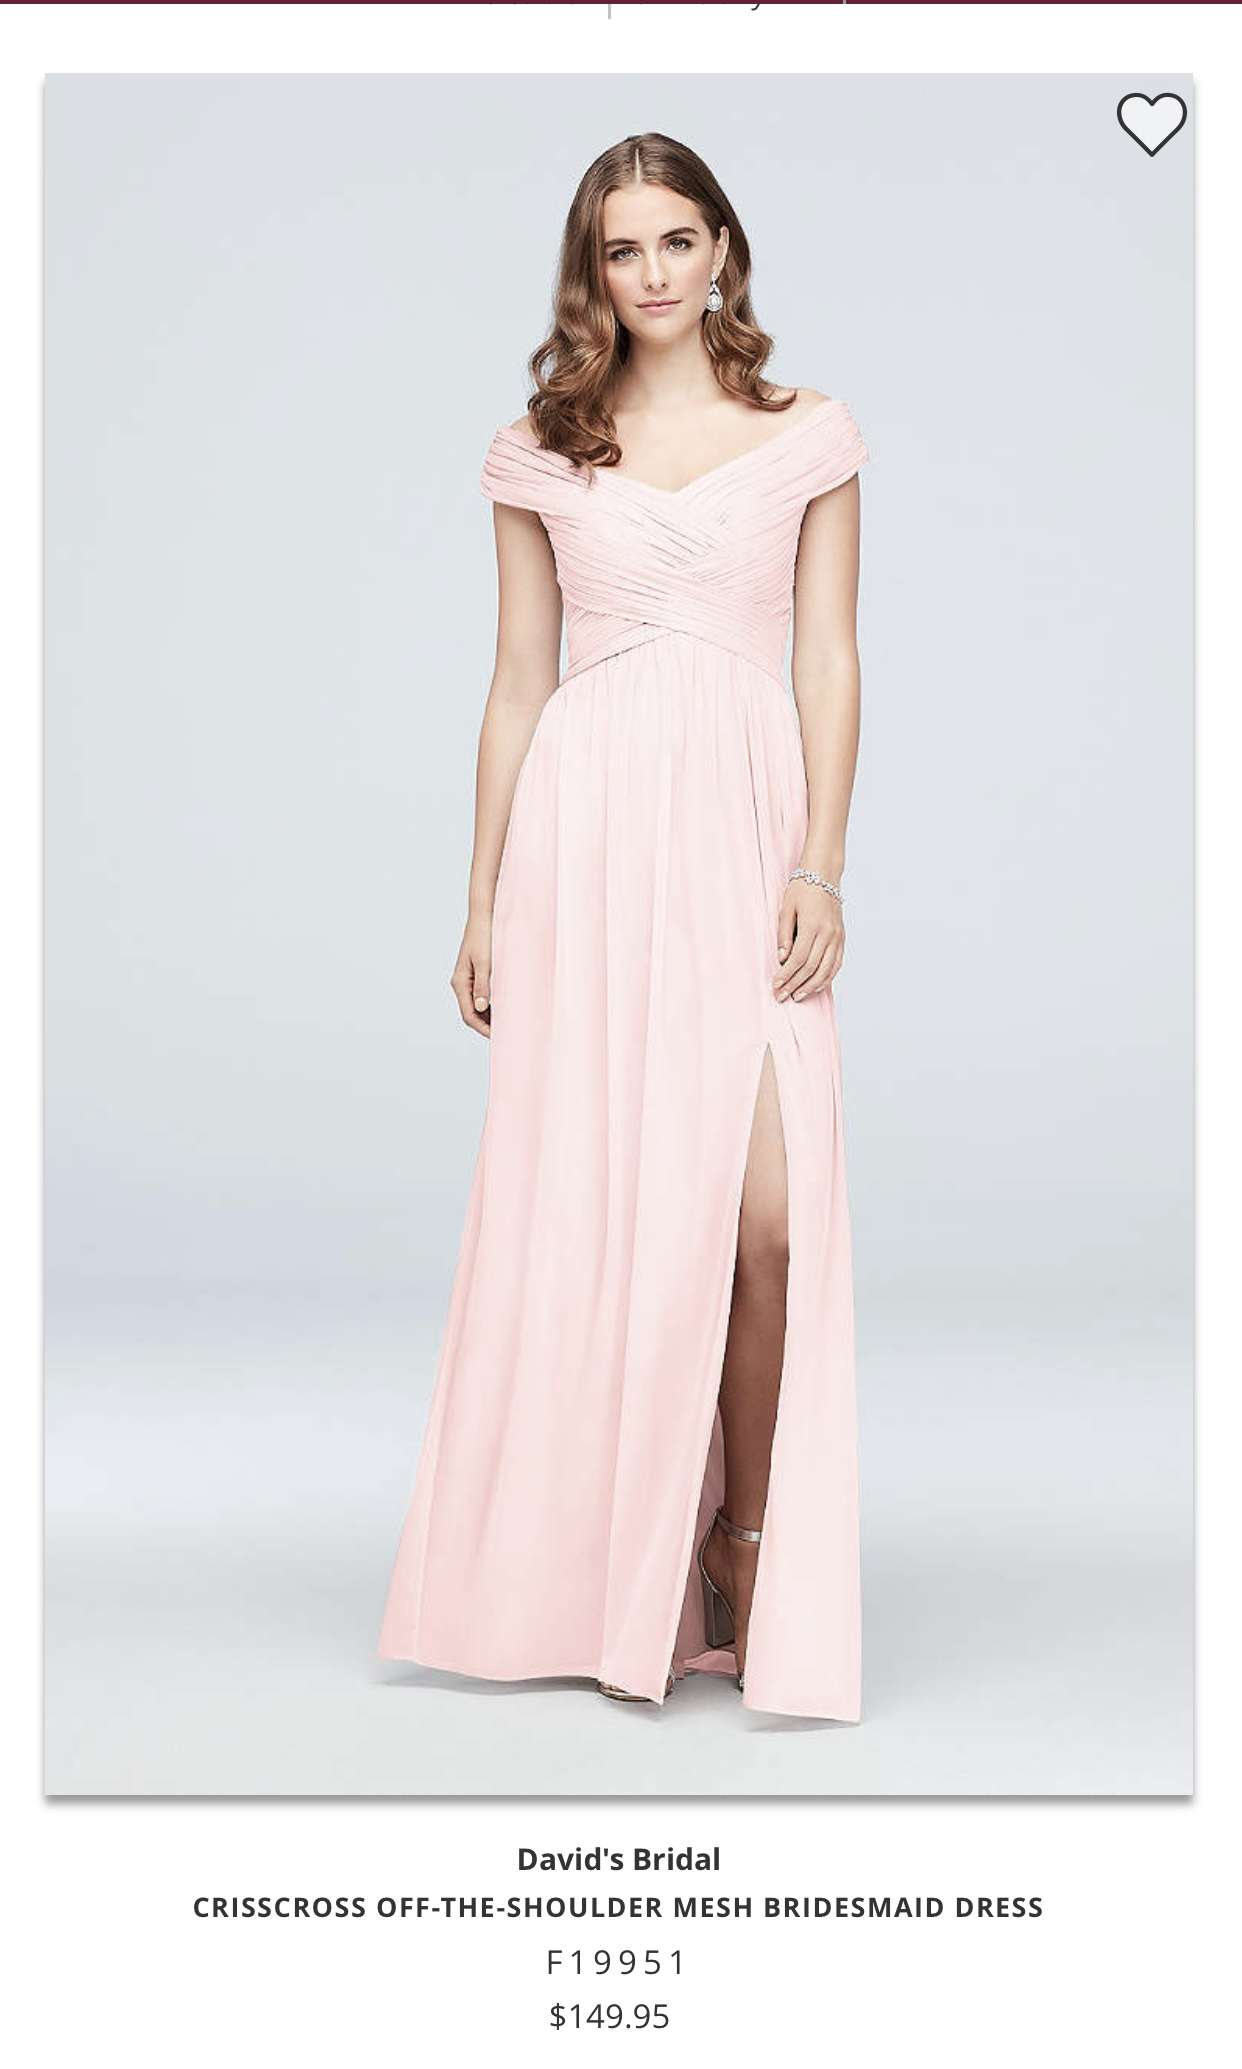 David's Bridal - Size 0 Bridesmaids Dress